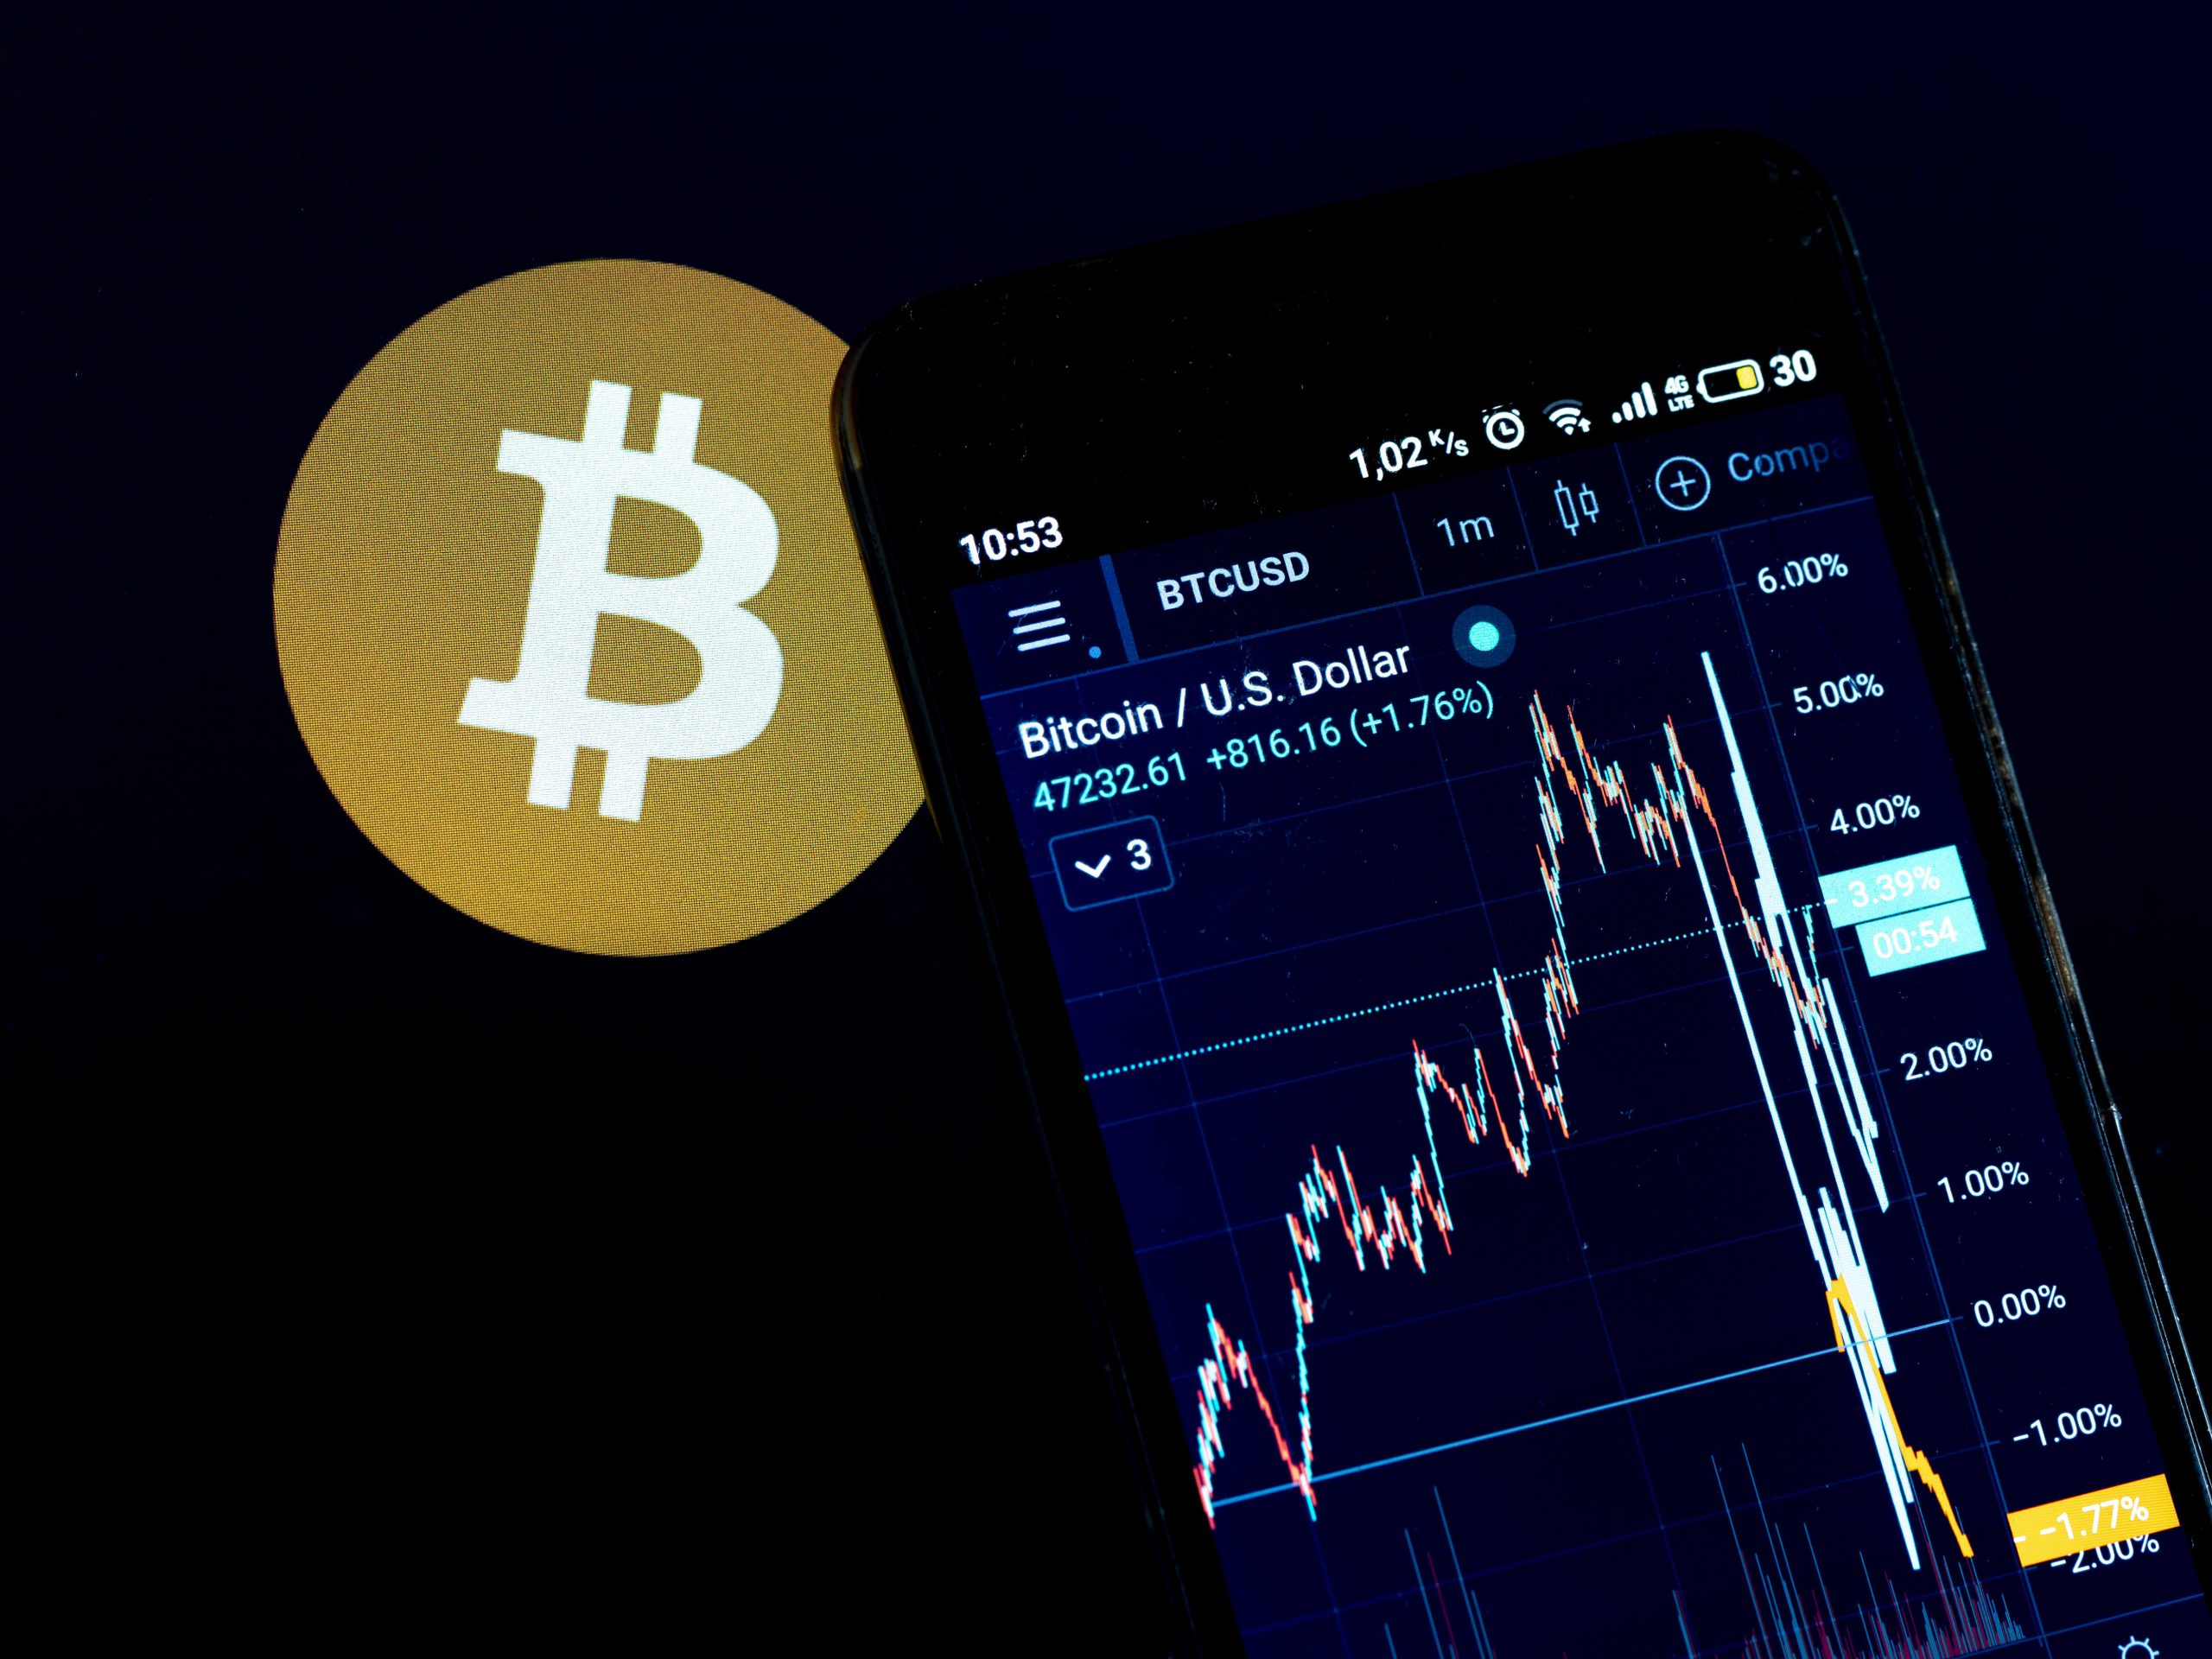 Bitcoin smashes through $51,000 to hit a new all-time high